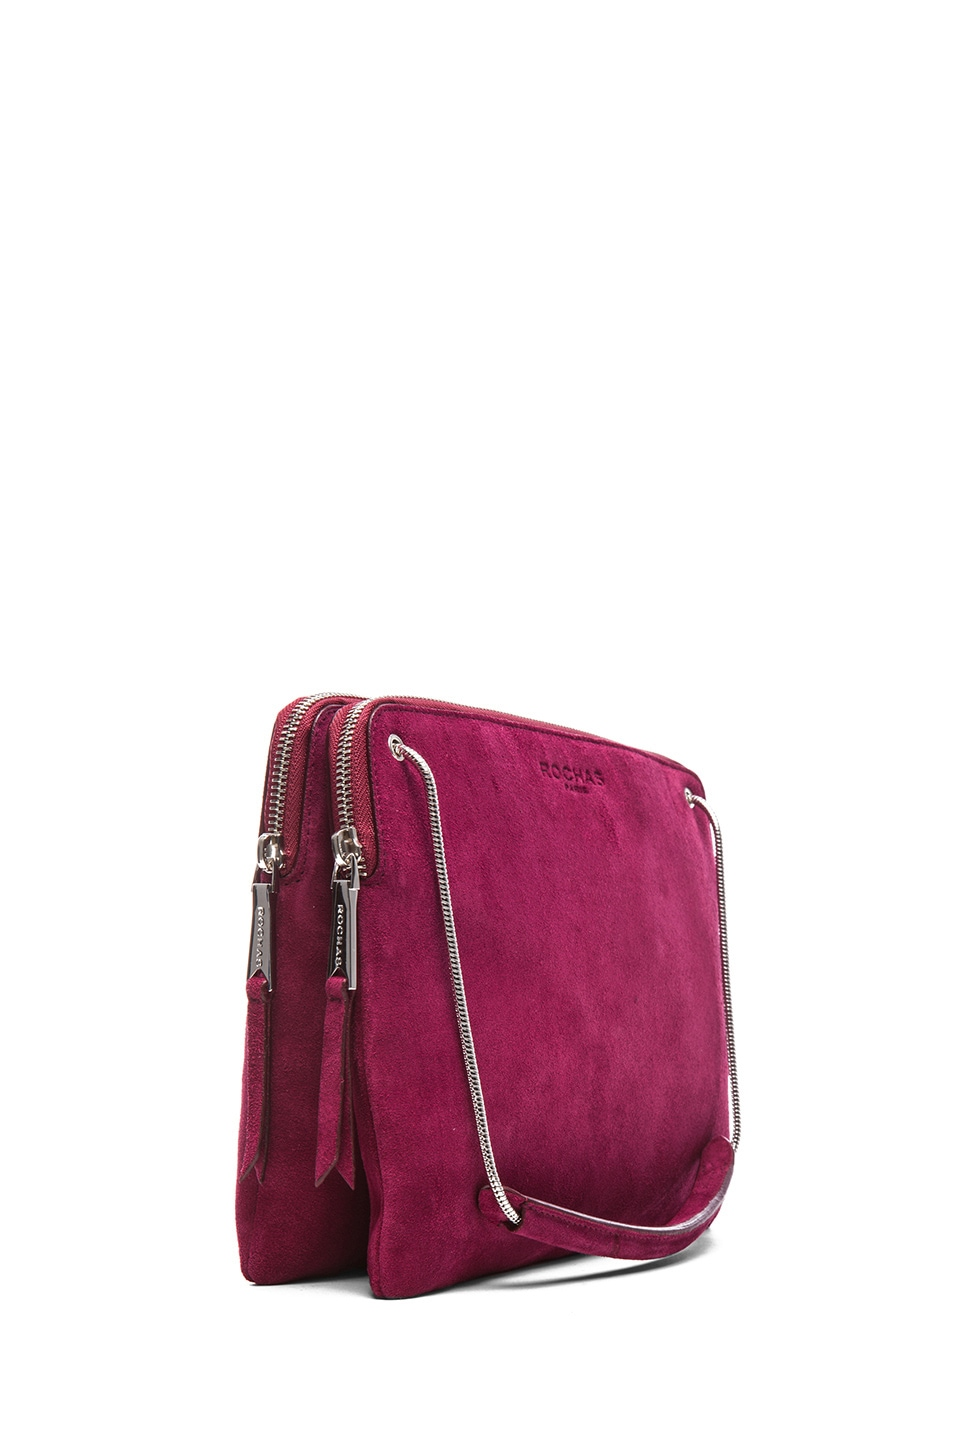 Image 3 of ROCHAS Small Borsa Suede Clutch in Claret